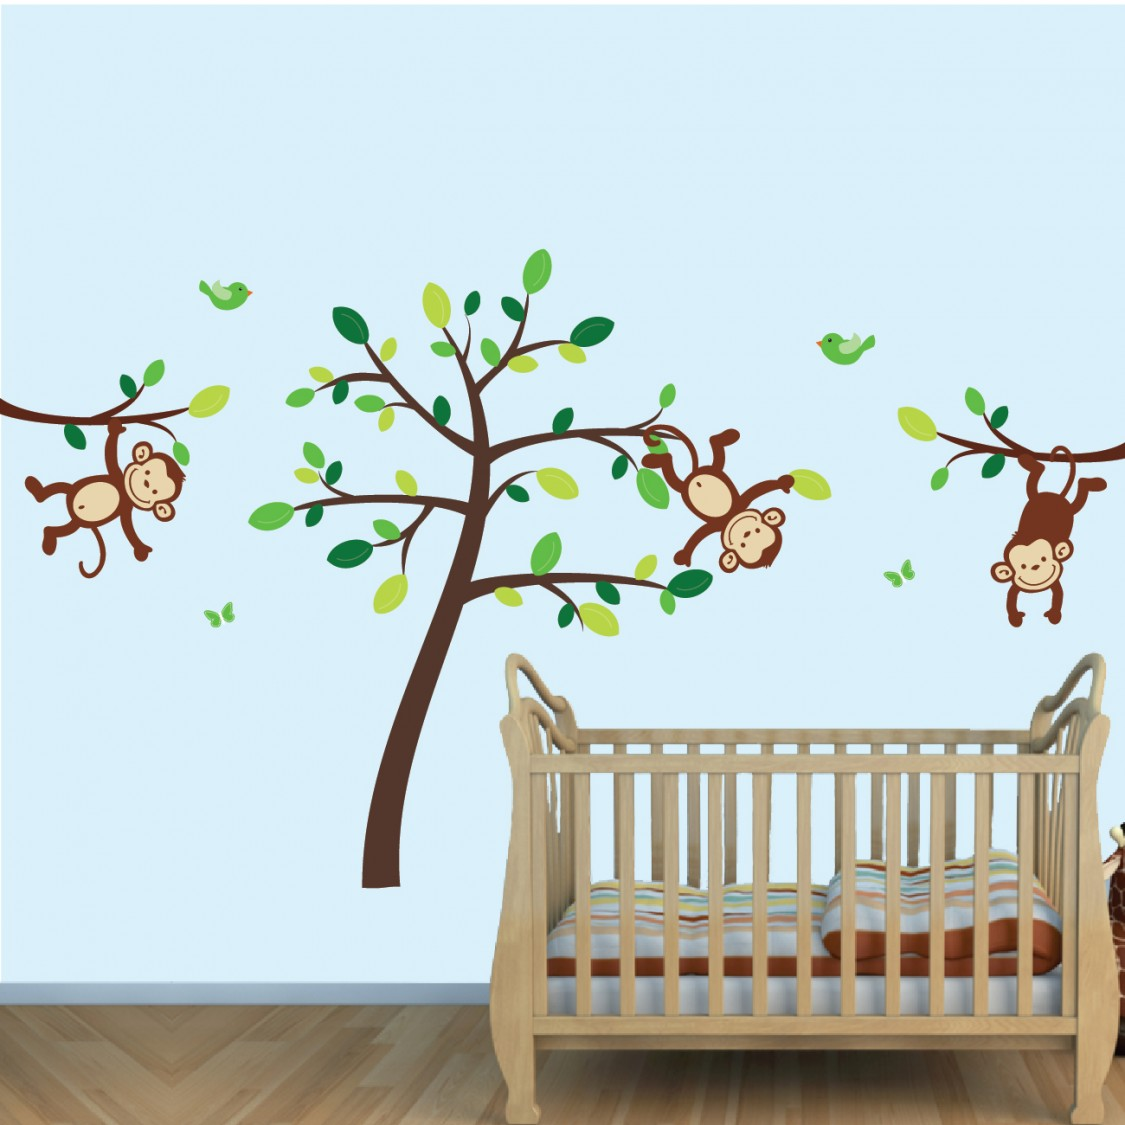 Green & Brown Jungle Tree Wall Decals For Boys Bedrooms